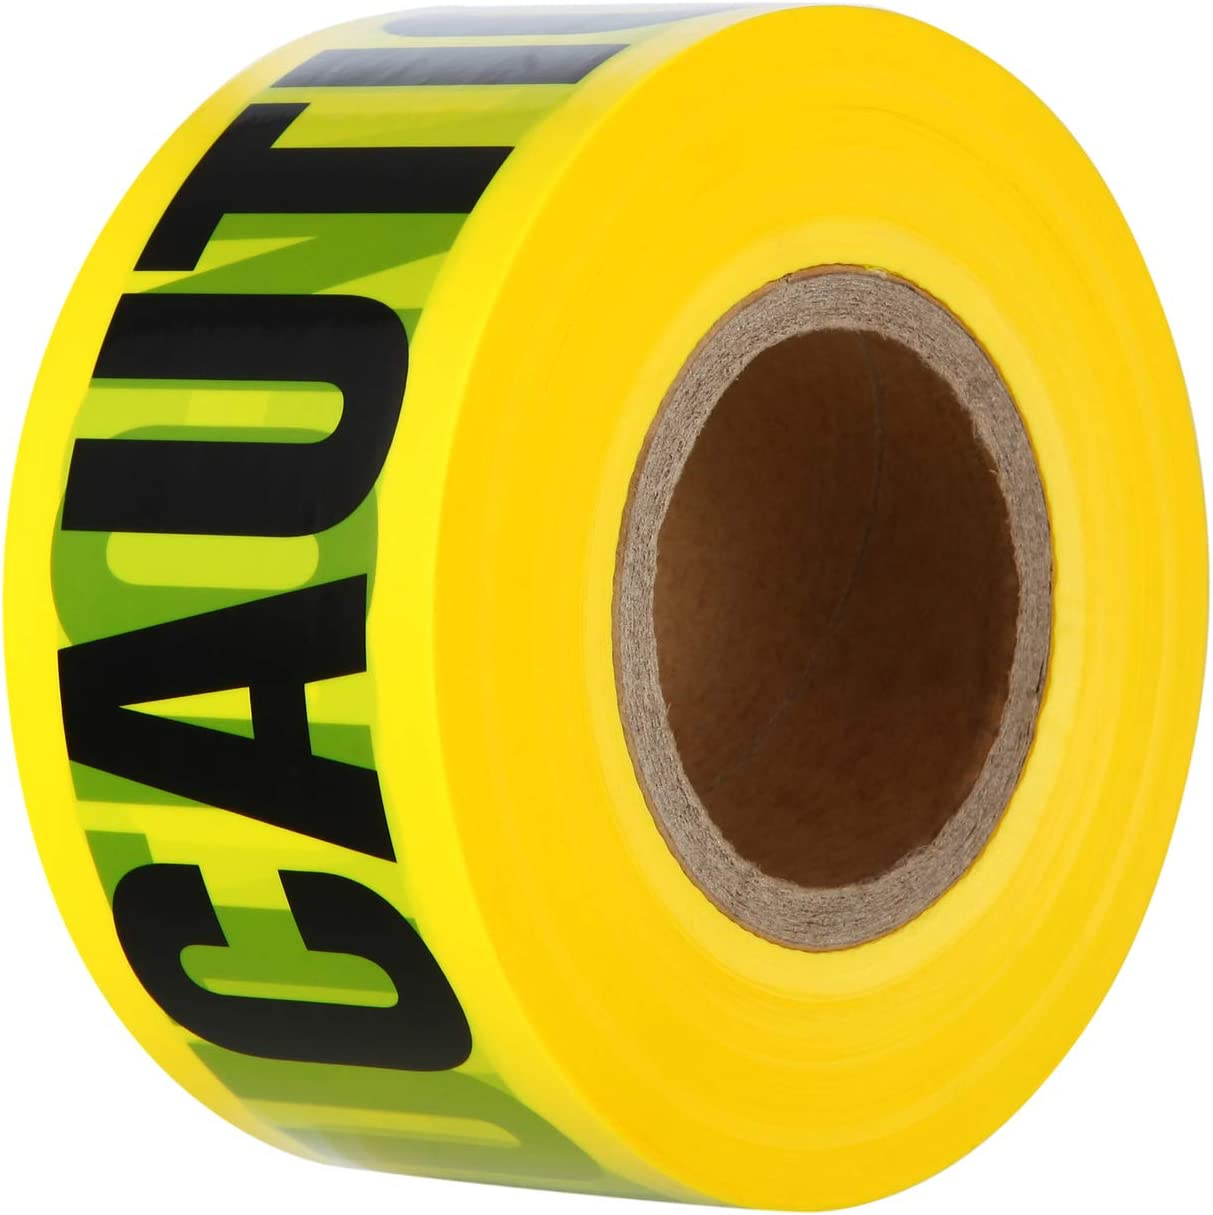 VICMORE Yellow CAUTION Tape 3-Inch by 1000-Feet Strong Barricade Tape Heavy-duty 2 Mil Thick Construction Tape Safety Barrier Tape Party Decoration Tape